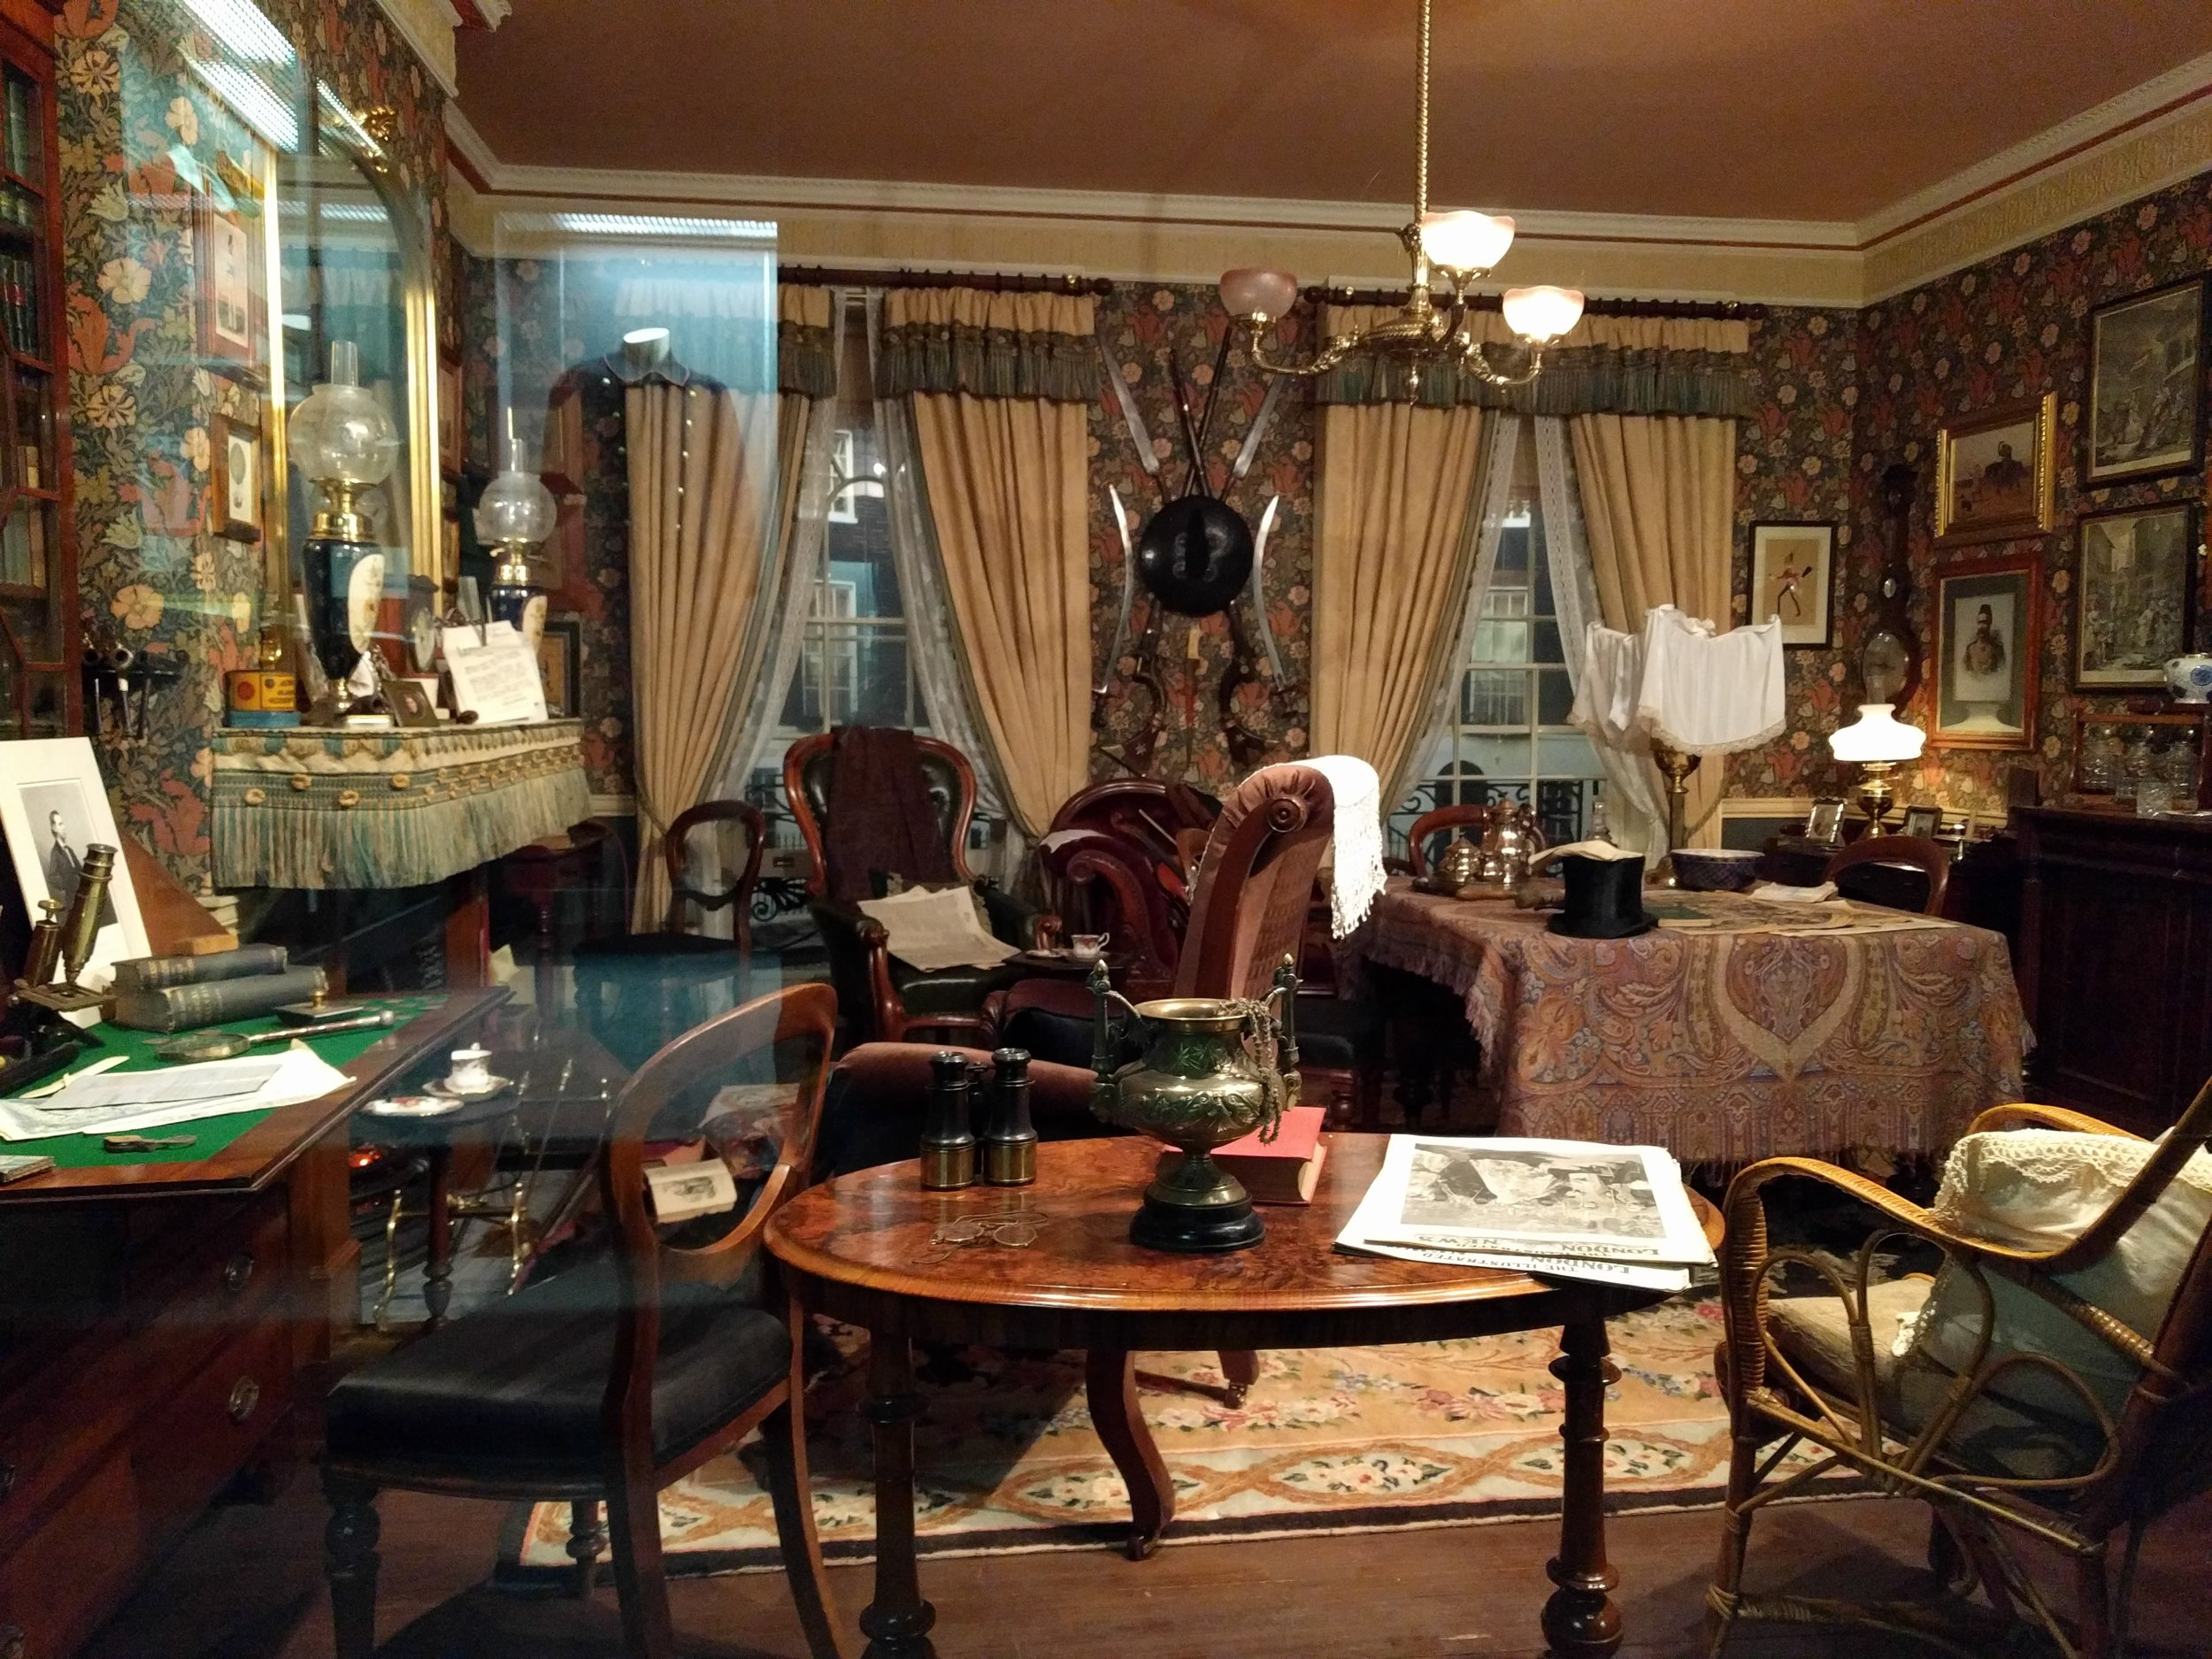 The audio guide says this is the only authentic re-creation of the living room at 221b Baker Street, because the designer used the books and illustrations to get accurate dimensions, designs, and furniture pieces where possible. And all the furniture is actual period pieces. This desk with the green top at the left is Watson's writing desk (Holmes's is in the opposite corner). Over the fireplace, you can see where Holmes has stuck his mail into the mantle with a knife; and on the wall between the windows are two jezail rifles, like the kind Watson got shot by in the Afghanistan war. You can't walk into the room, you have to sit outside a floor-to-ceiling window, but it was still cool. And there was a nice bench for my tired old Reichenbach-hiking legs.